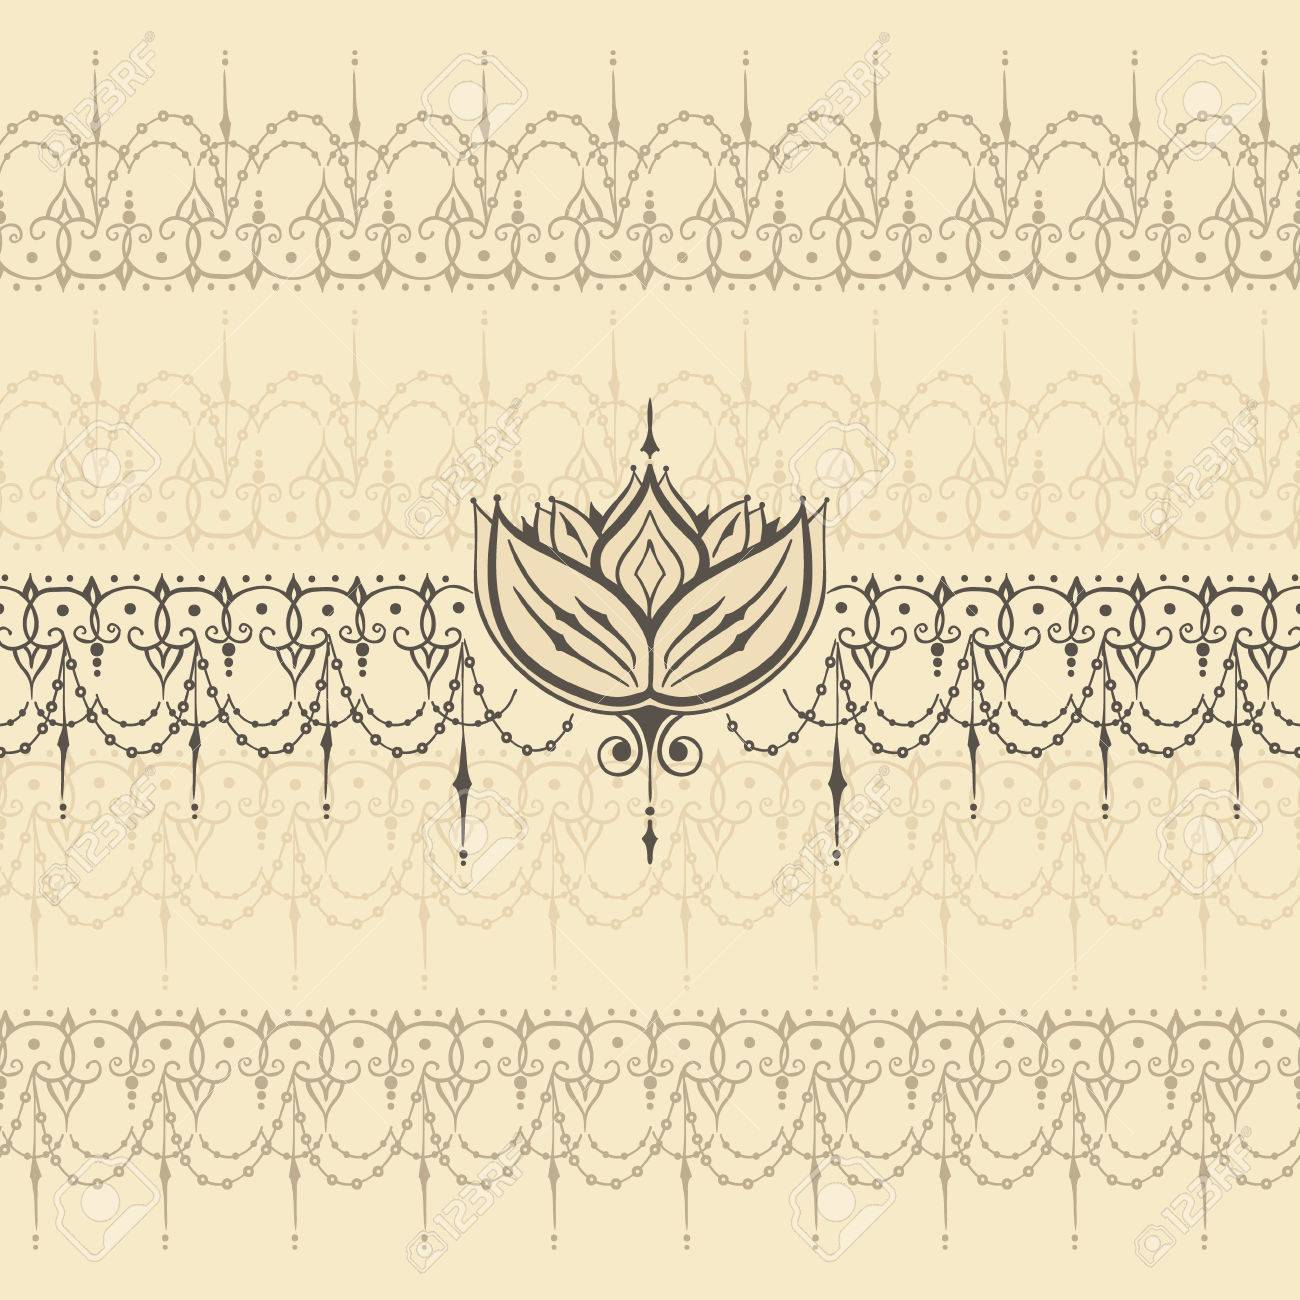 Sketch of endless stripes and lotus flower in henna tattoo style sketch of endless stripes and lotus flower in henna tattoo style mehndi element for tattoo mightylinksfo